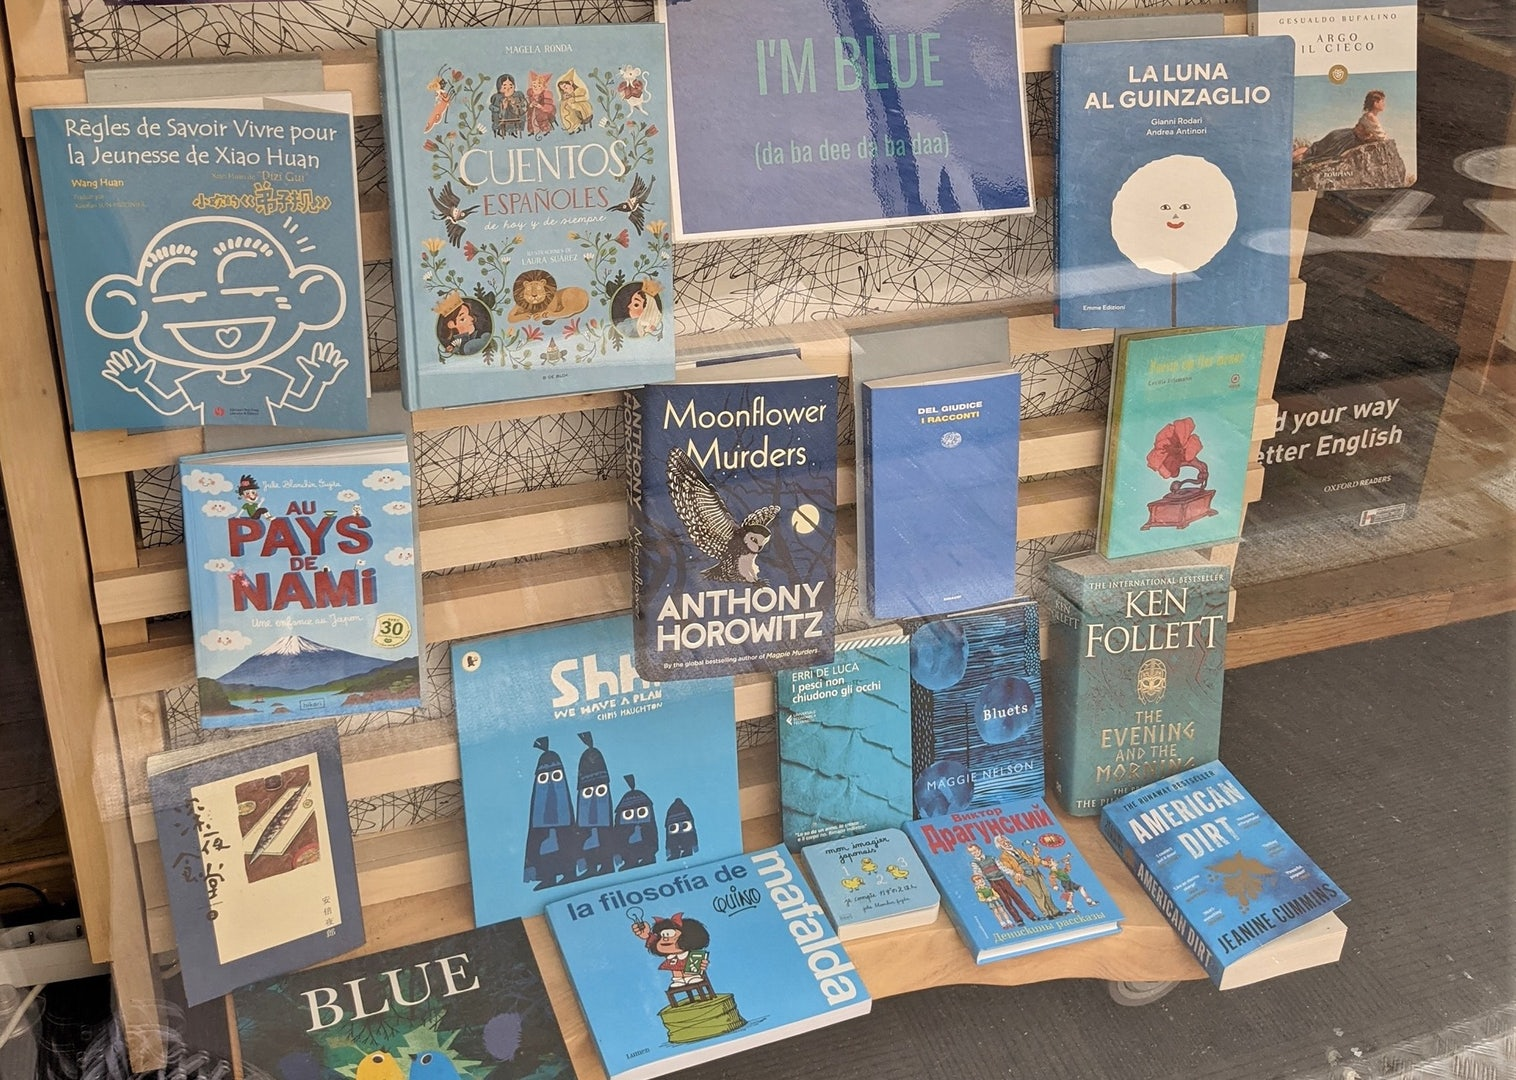 a collection of books with blue covers in the store window of Ombres Blanches